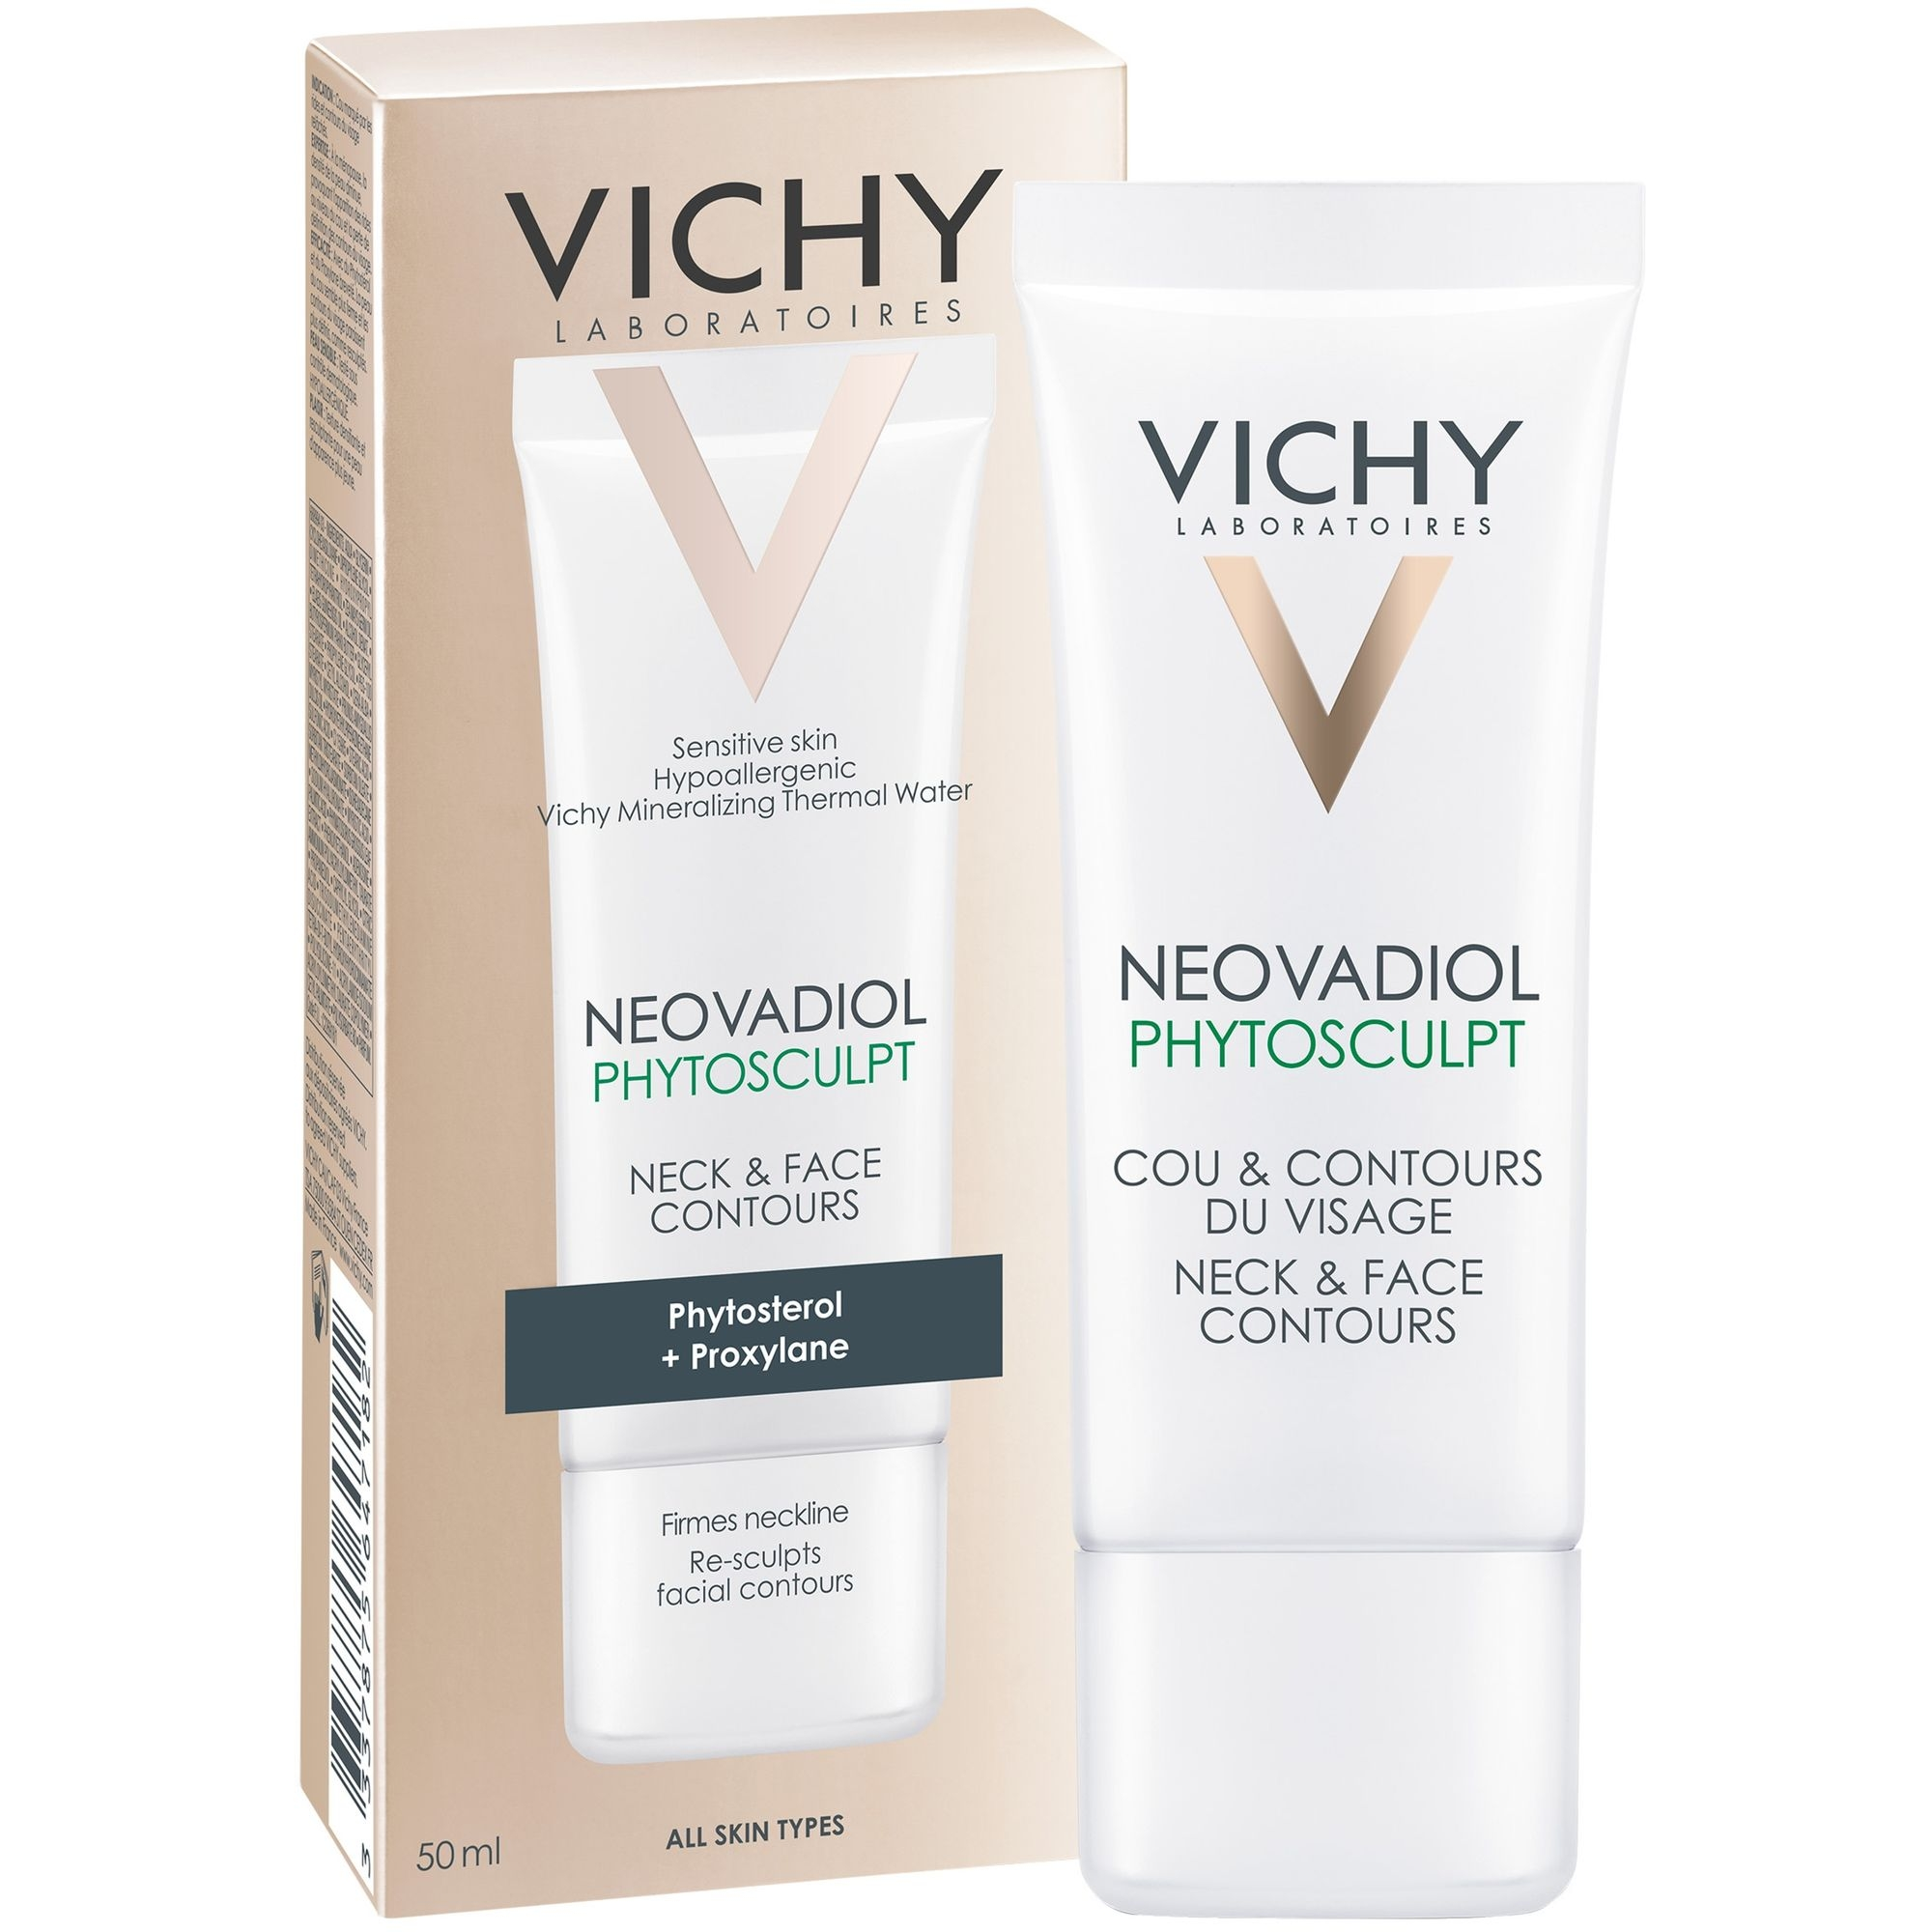 VICHY Крем Neovadiol Phytosculpt для Зоны Шеи и Декольте Невоадиол Фитоскульпт, 50 мл vichy neovadiol night